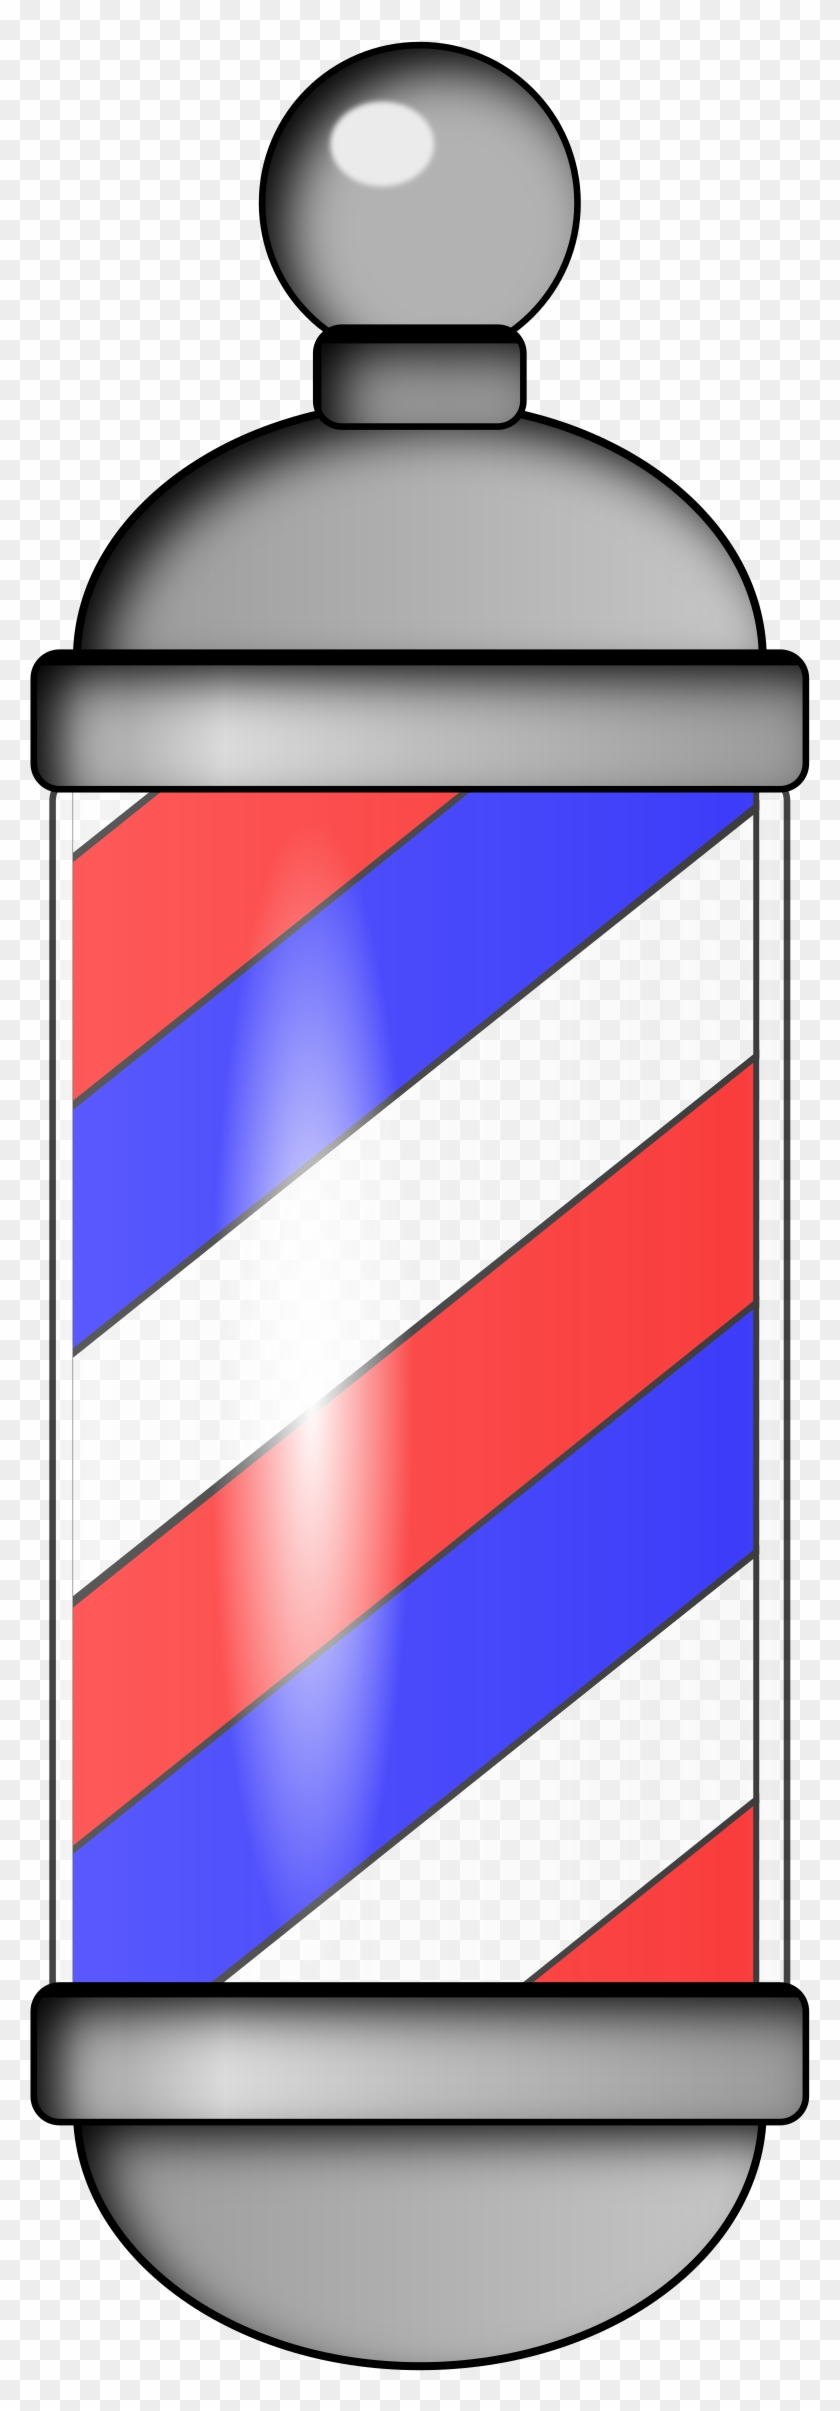 Big Image - Barber Shop Red And White Pole Meaning #134549